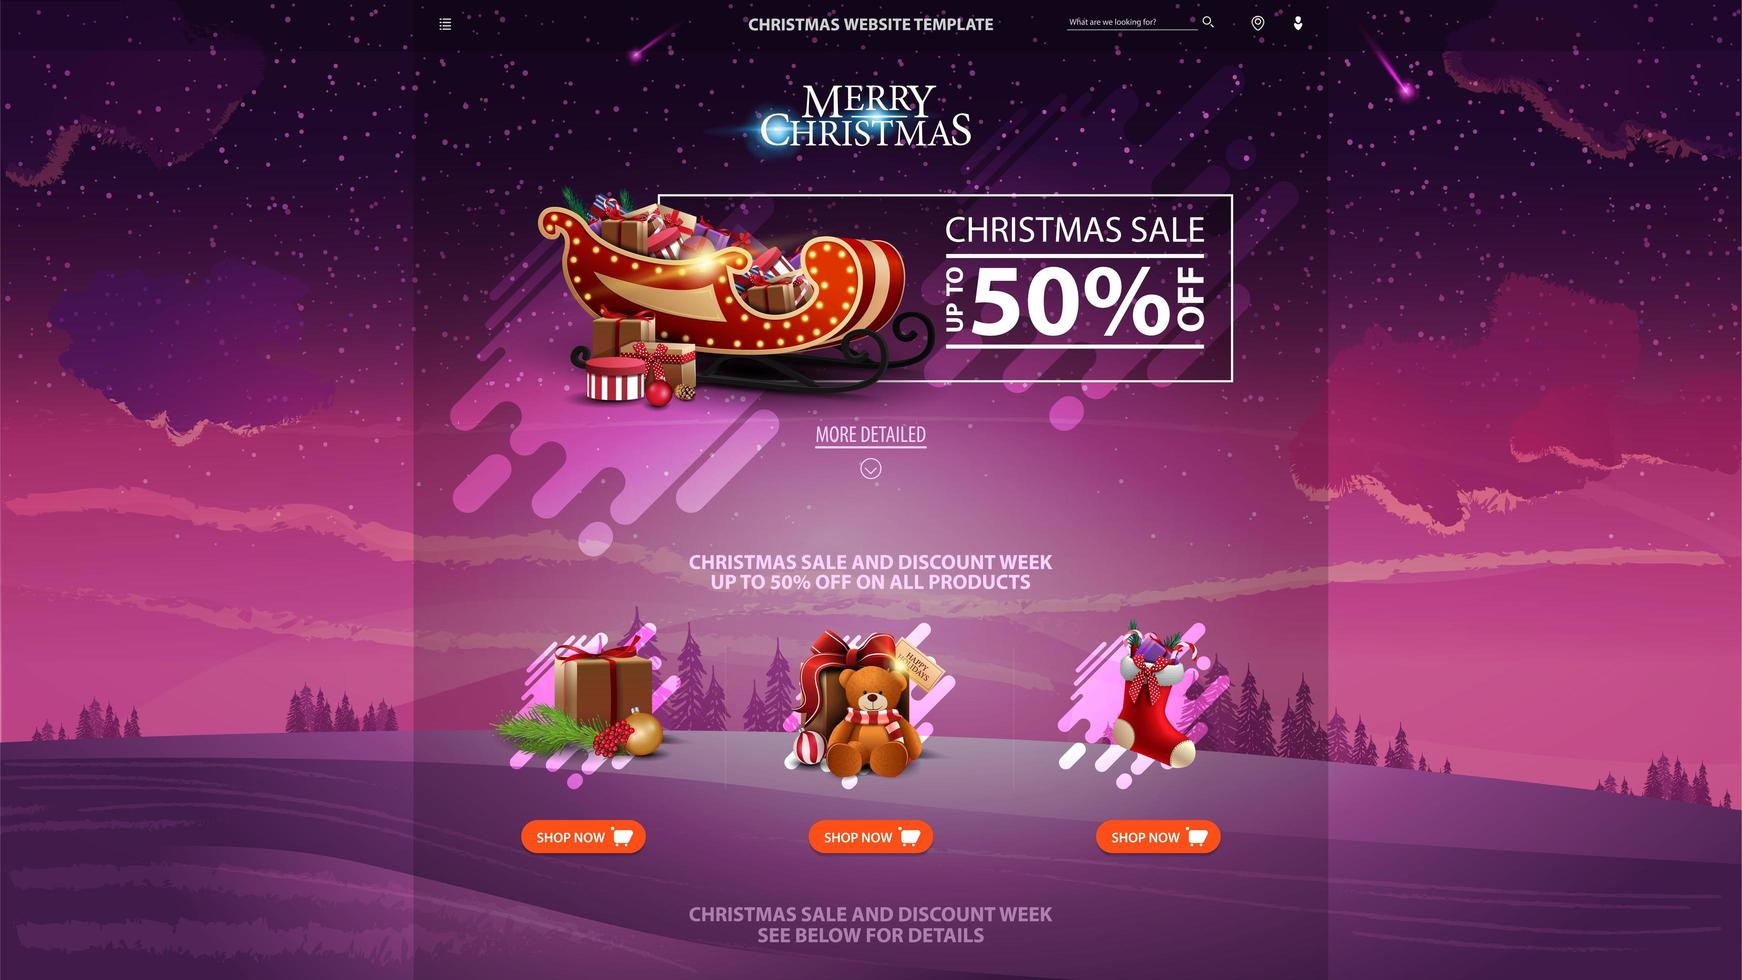 Christmas sale design website template with discount banner, beautiful icons and winter landscape on the background vector